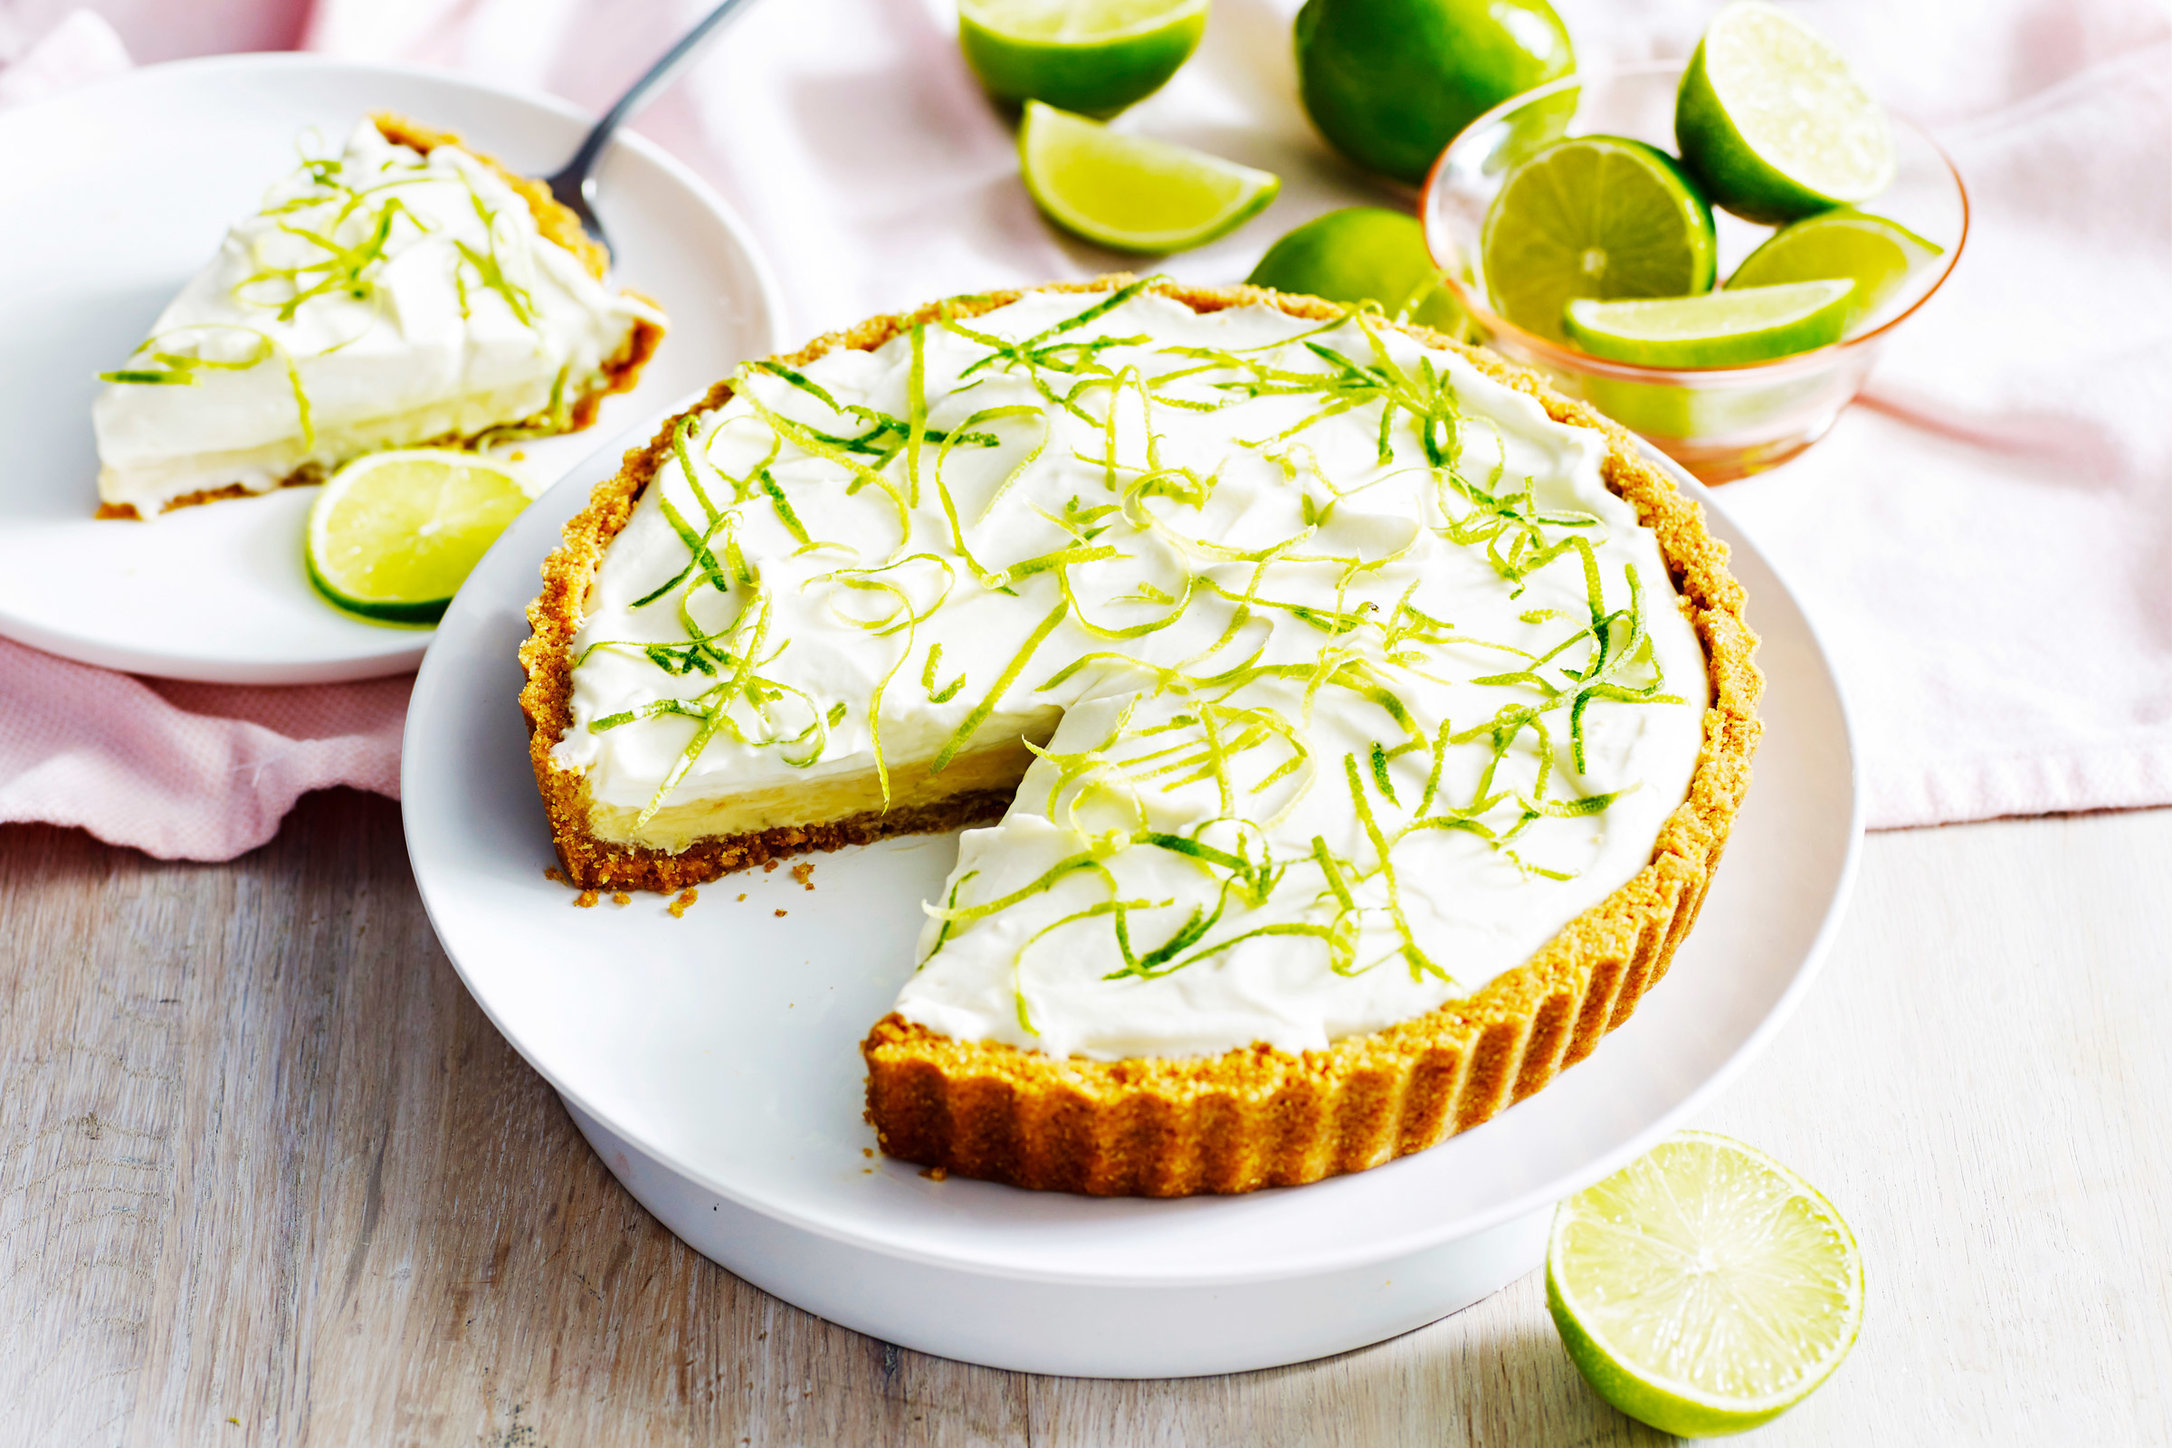 Andy-Lewis©Food-photographer_Food-Photography_Coles_Lime-Pie-With-Whipped-Coconut-Cream_60127.jpg